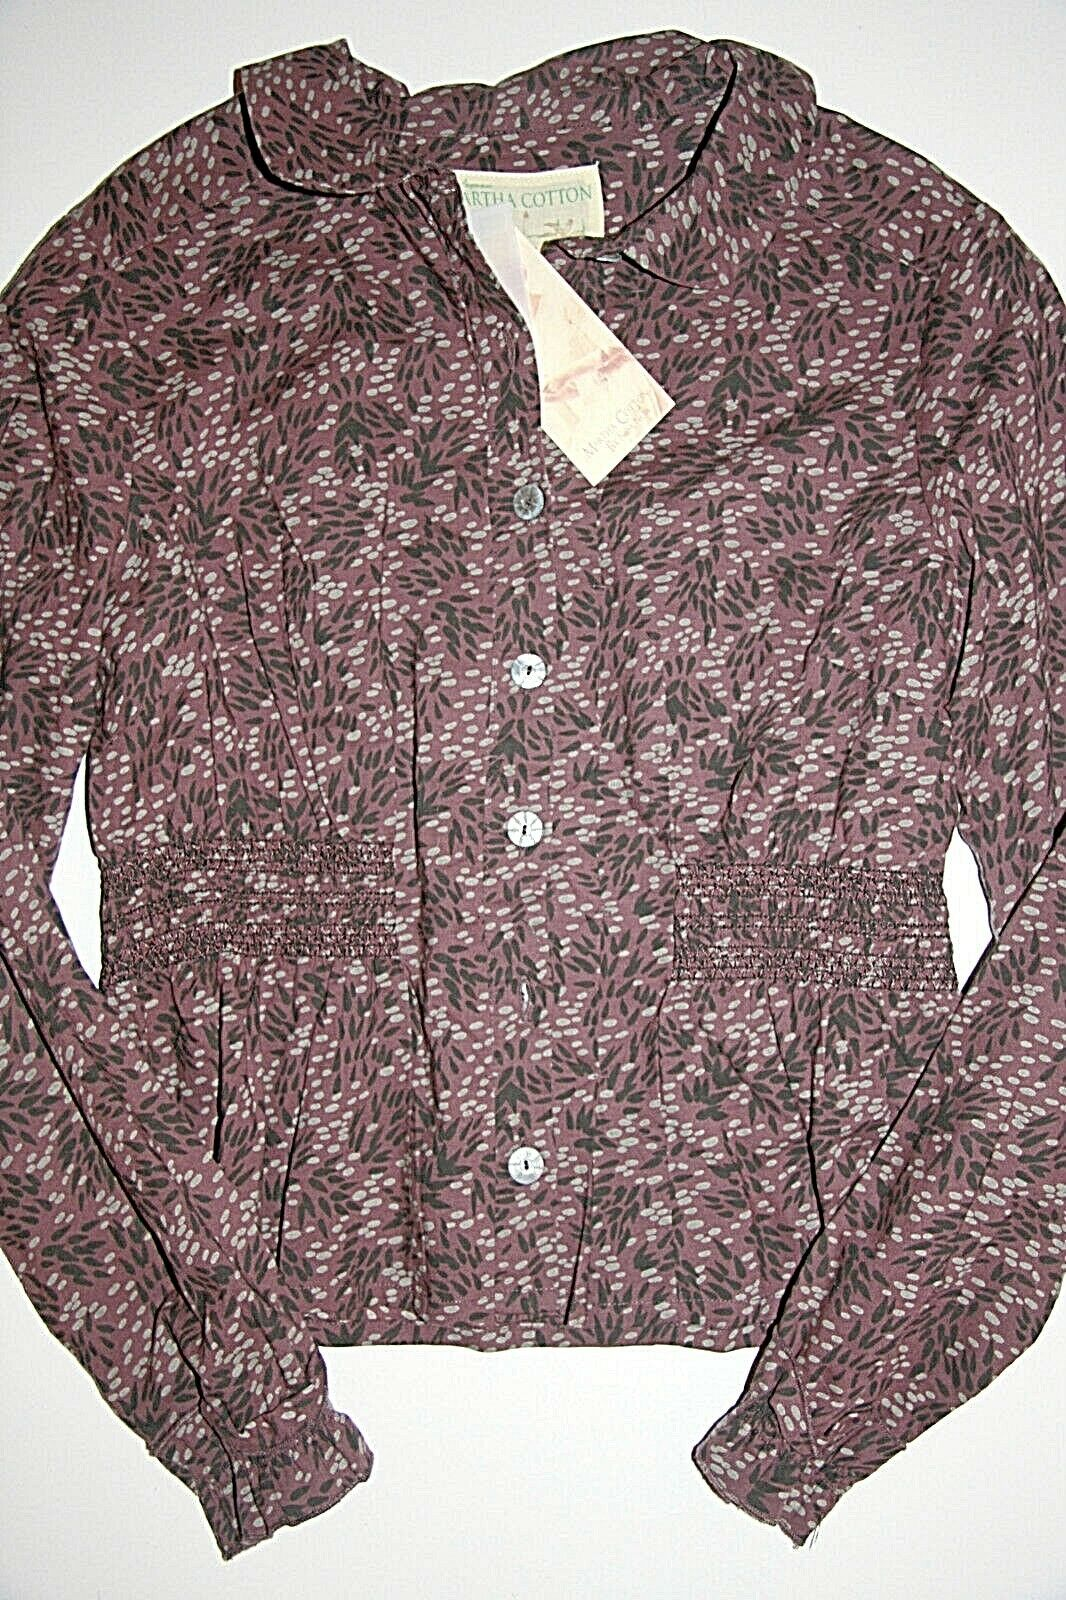 Noa Noa   bluese Langarm  Martha Cotton Prune  size  S  Neu